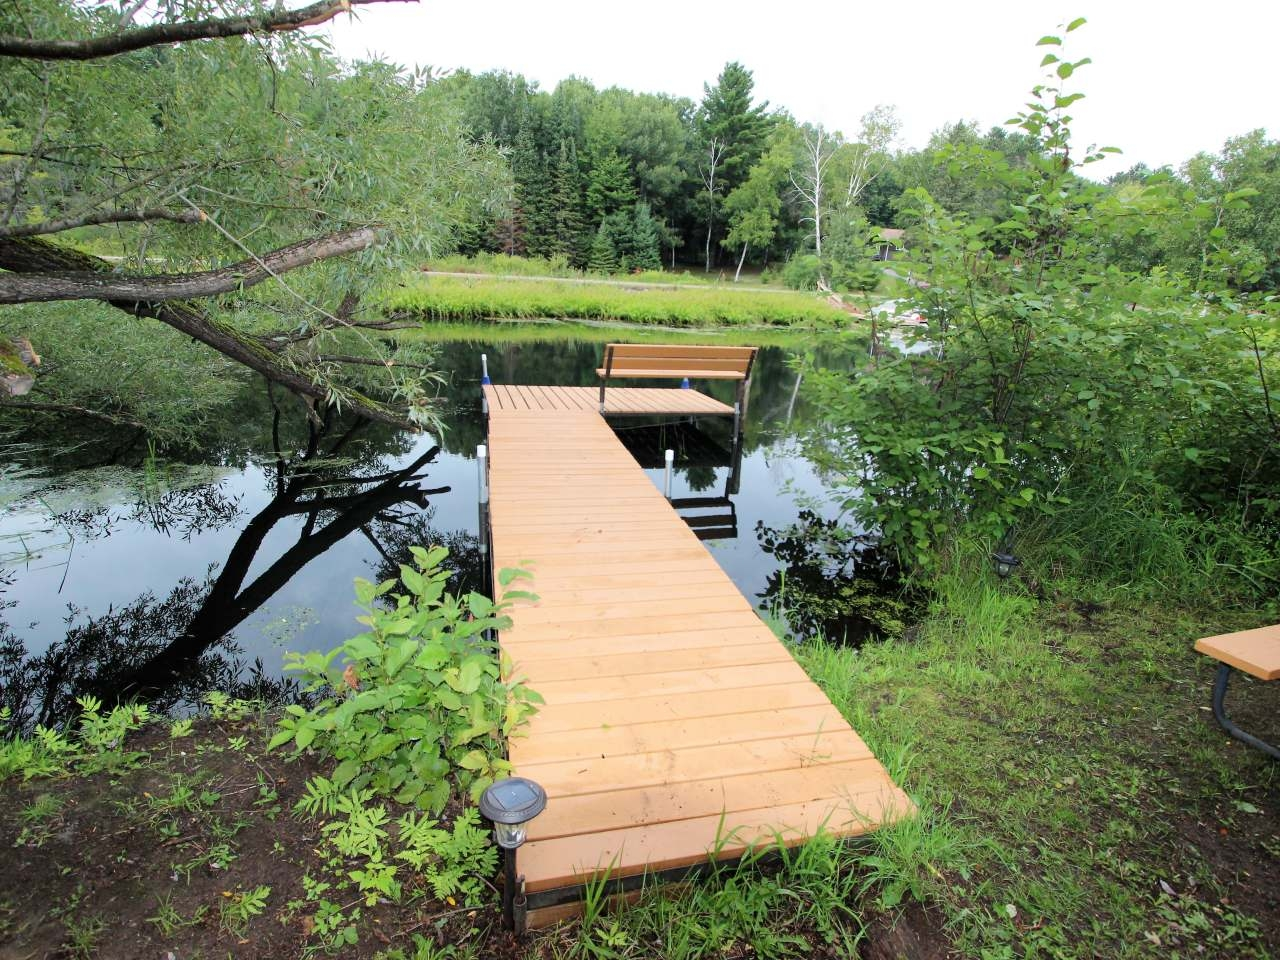 2 acres of mature towering trees with shared ownership of a lake lot on Little Arbor Vitae. Beautiful building lot with great character and close to town. The shared lake frontage is a great affordable way to get on good water.